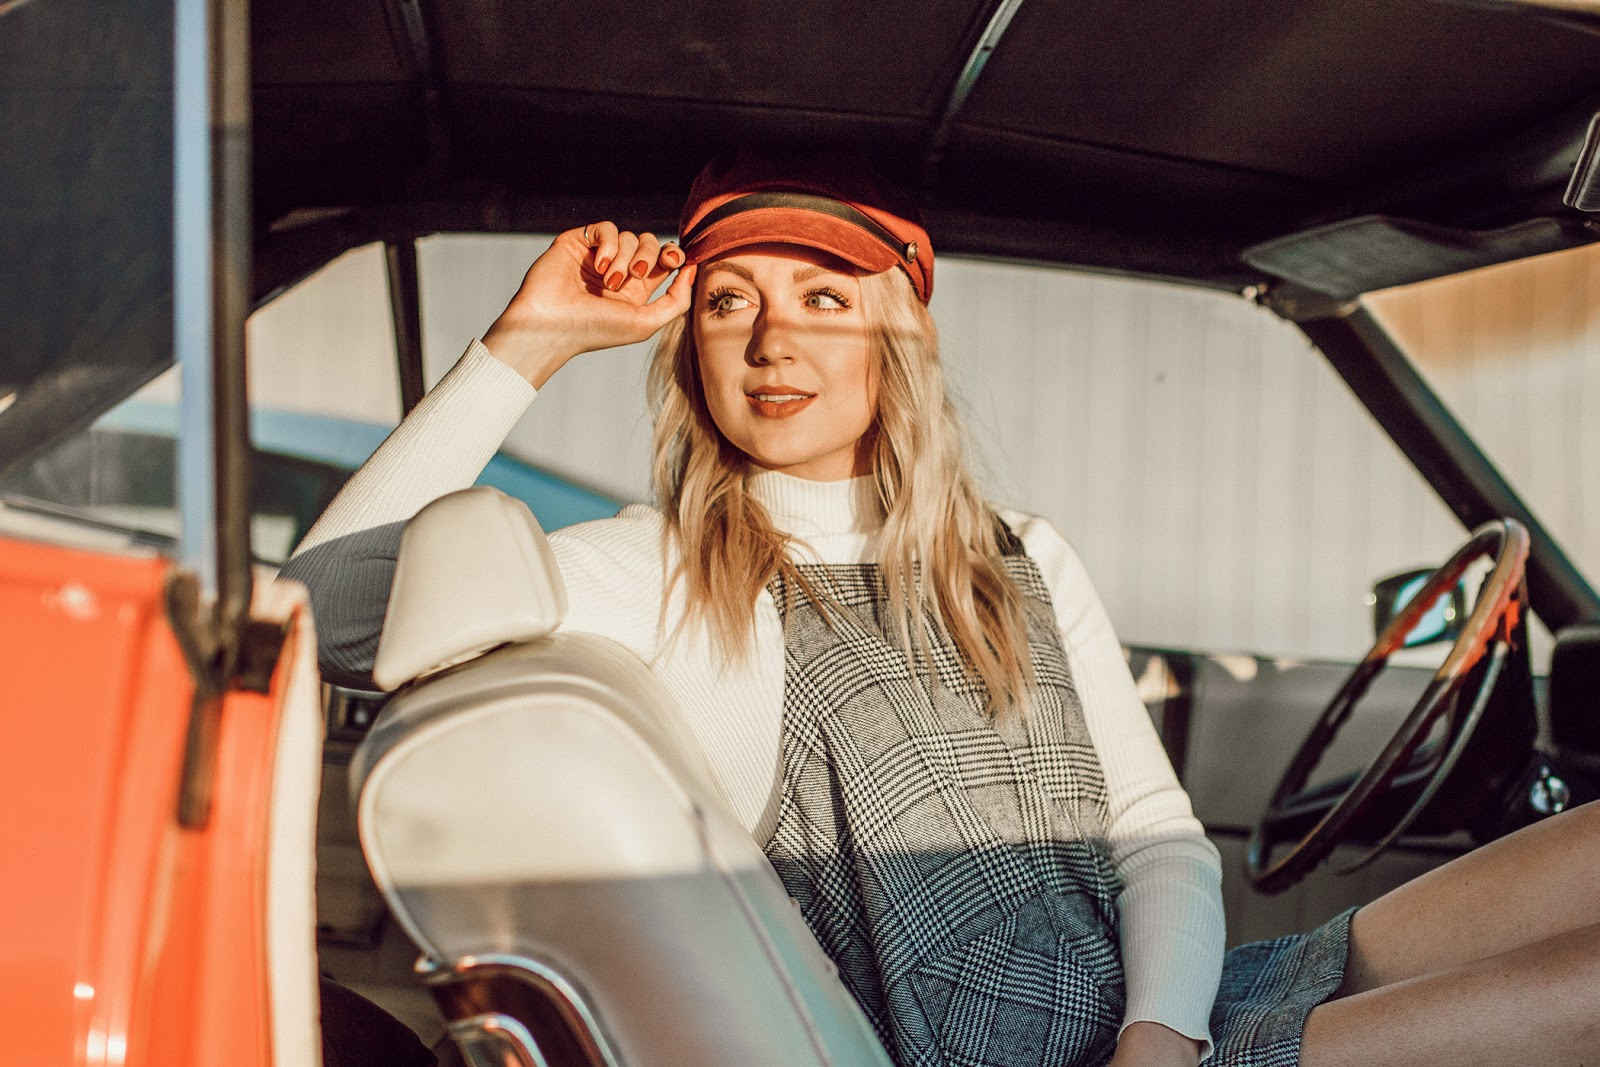 Photoshoot in a vintage car